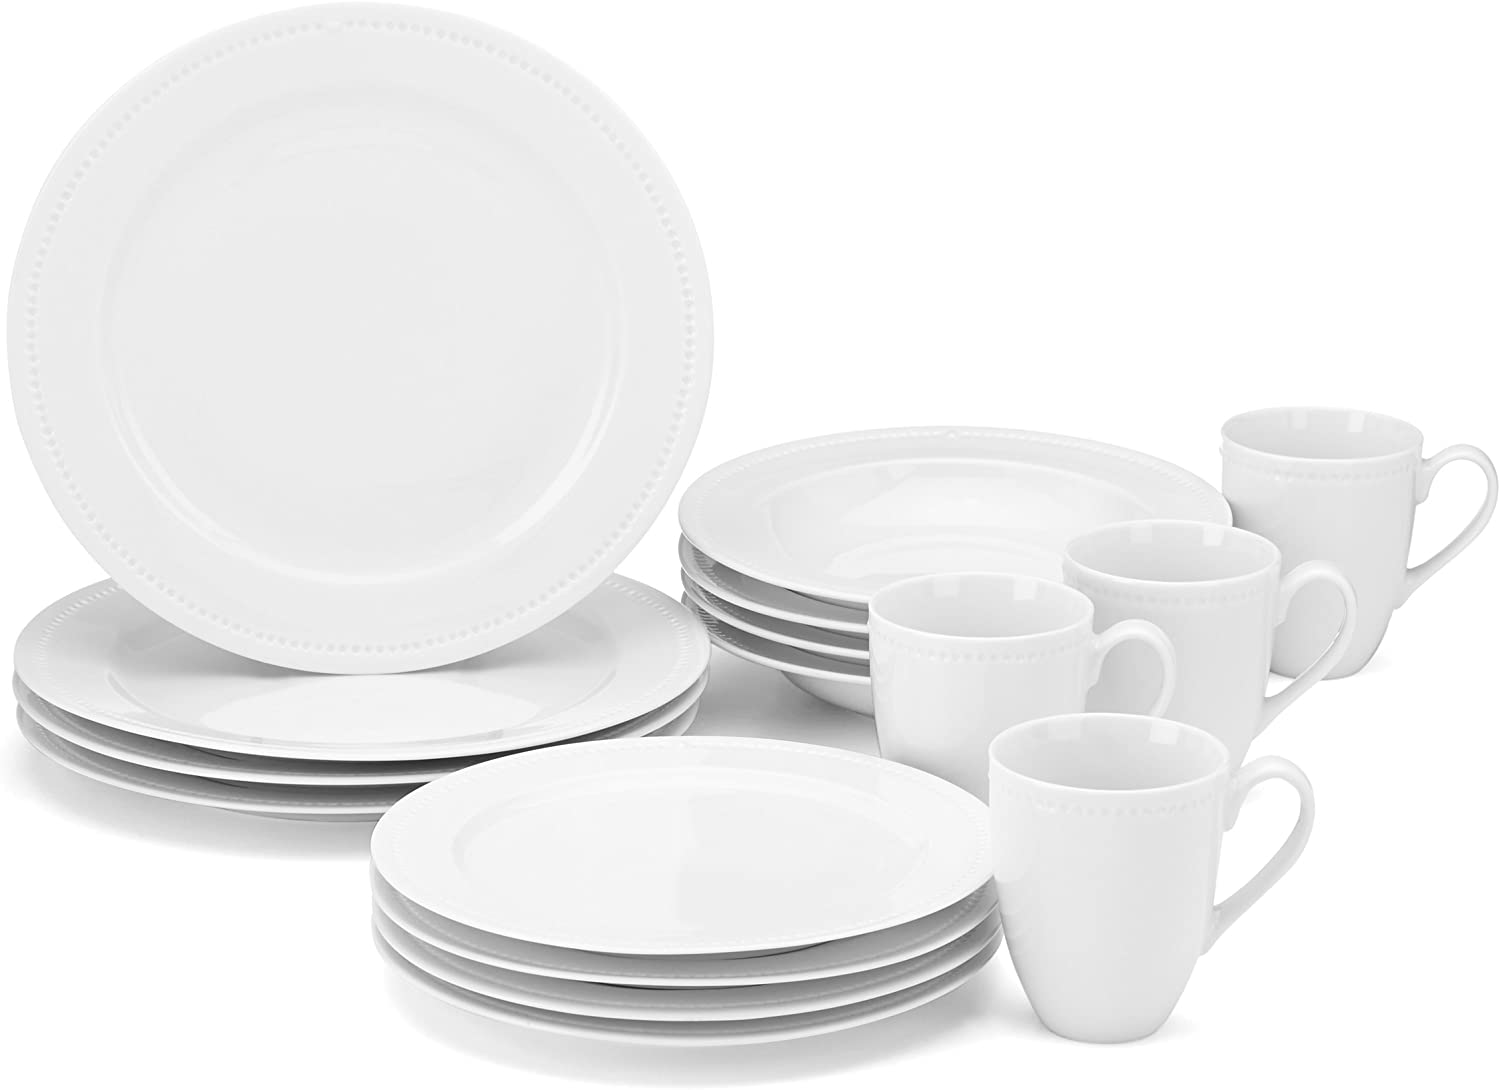 Food & Wine For Gorham On the Dot 16-Piece Dinnerware Set